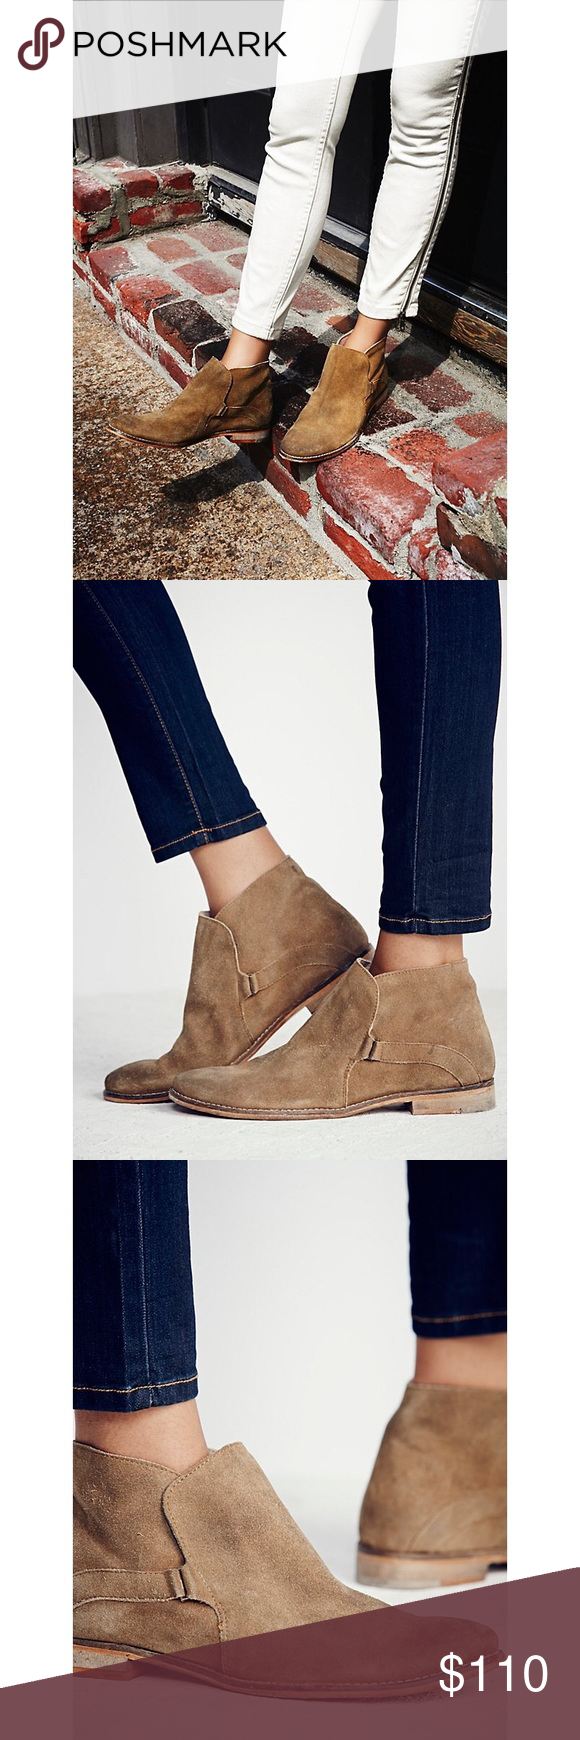 New Tan Free People Distressed Summit Ankle Boots NIB Authentic Brand New with Box! New Tan Festival Free People Women's Distressed Suede Summit Ankle Boots Size 40  Summit Ankle Boot Style: 36788537  Vintage inspired distressed suede ankle boots, that have been individually hand washed to achieve a worn-in look and feel. Easy slip-on surplice design with hidden elastic gusset. Each pair will vary due to the hand washing technique used.  Size: 40 Free People Shoes Ankle Boots & Booties